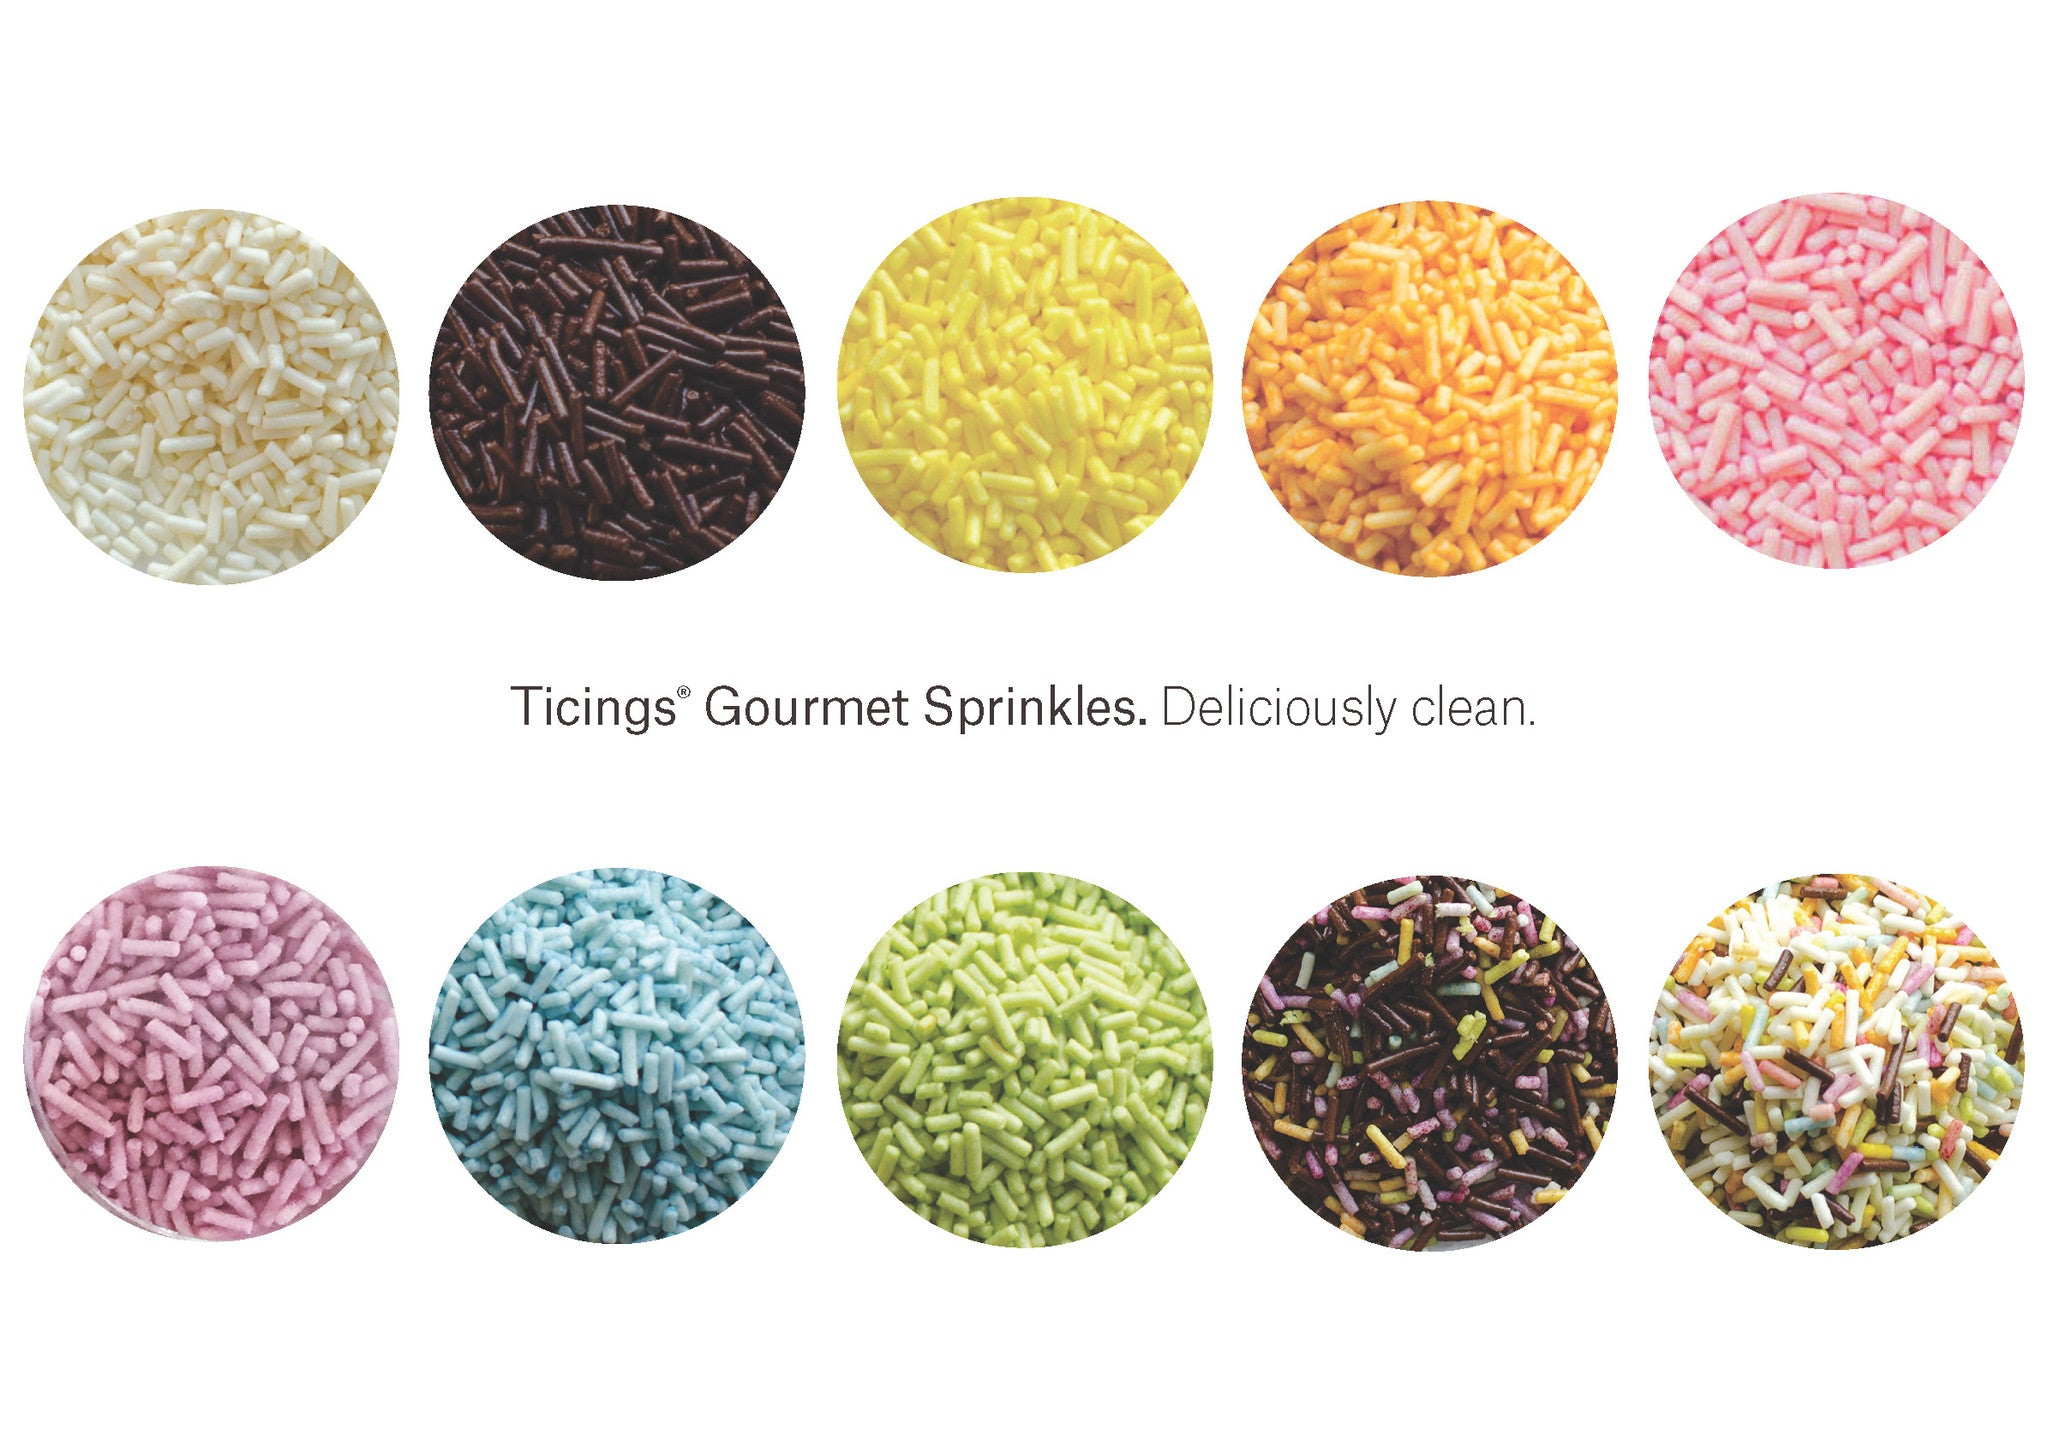 Ticings Gourmet Sprinkles are tinted with the most vibrant natural colors on the market.